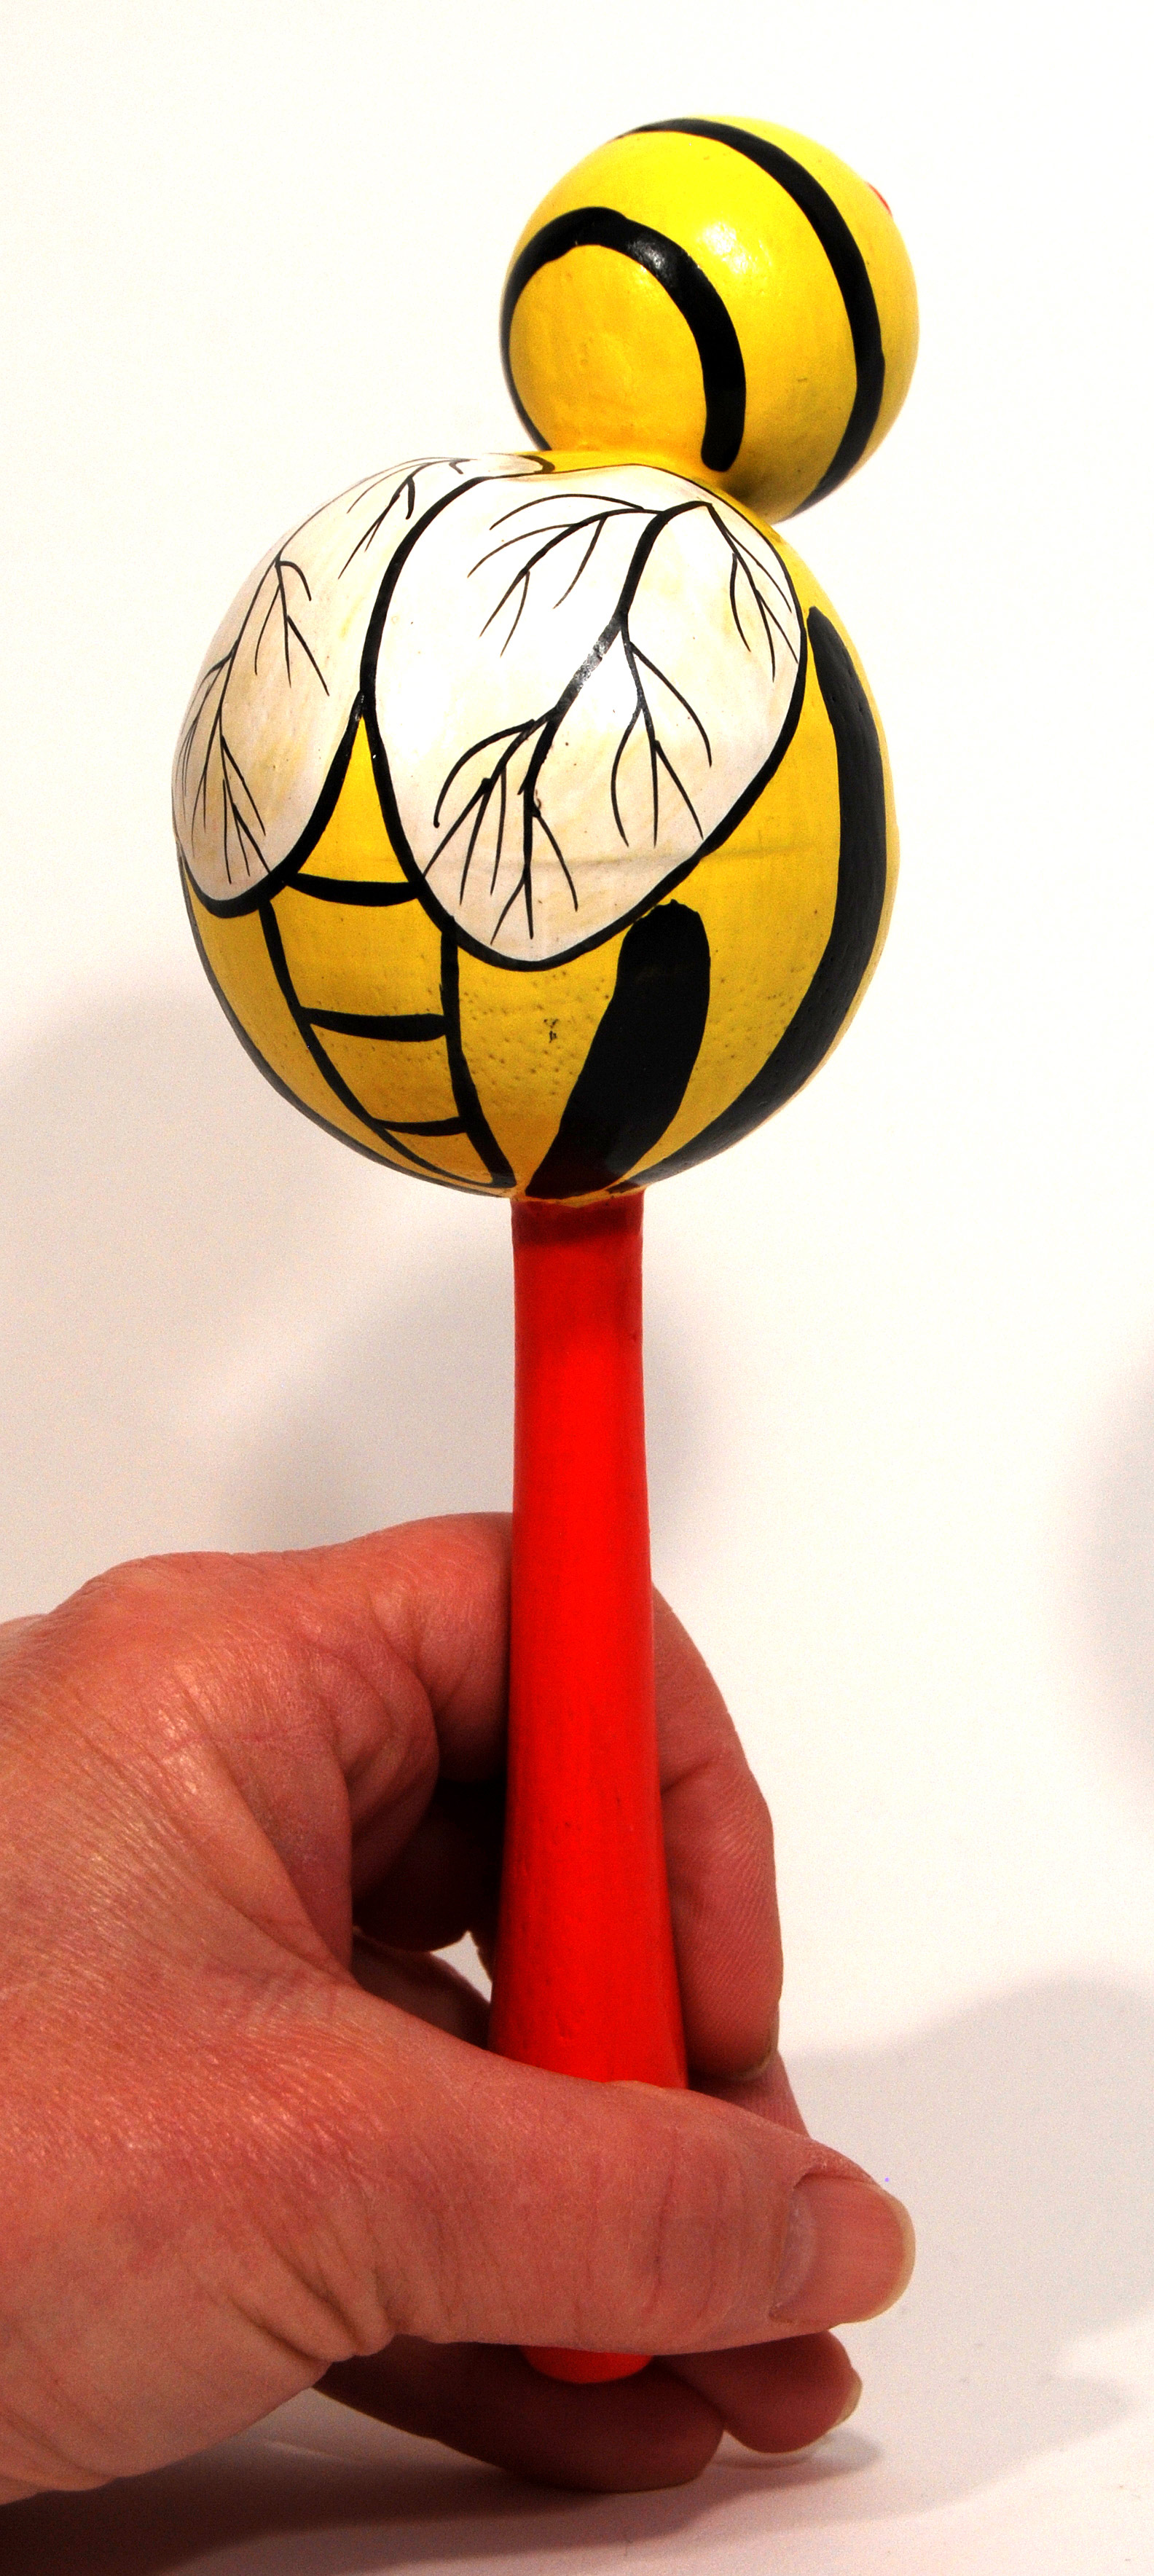 Bumble Bee Insect Animal Maracas -  Hand Carved Handmade Wooden Musical Instrument